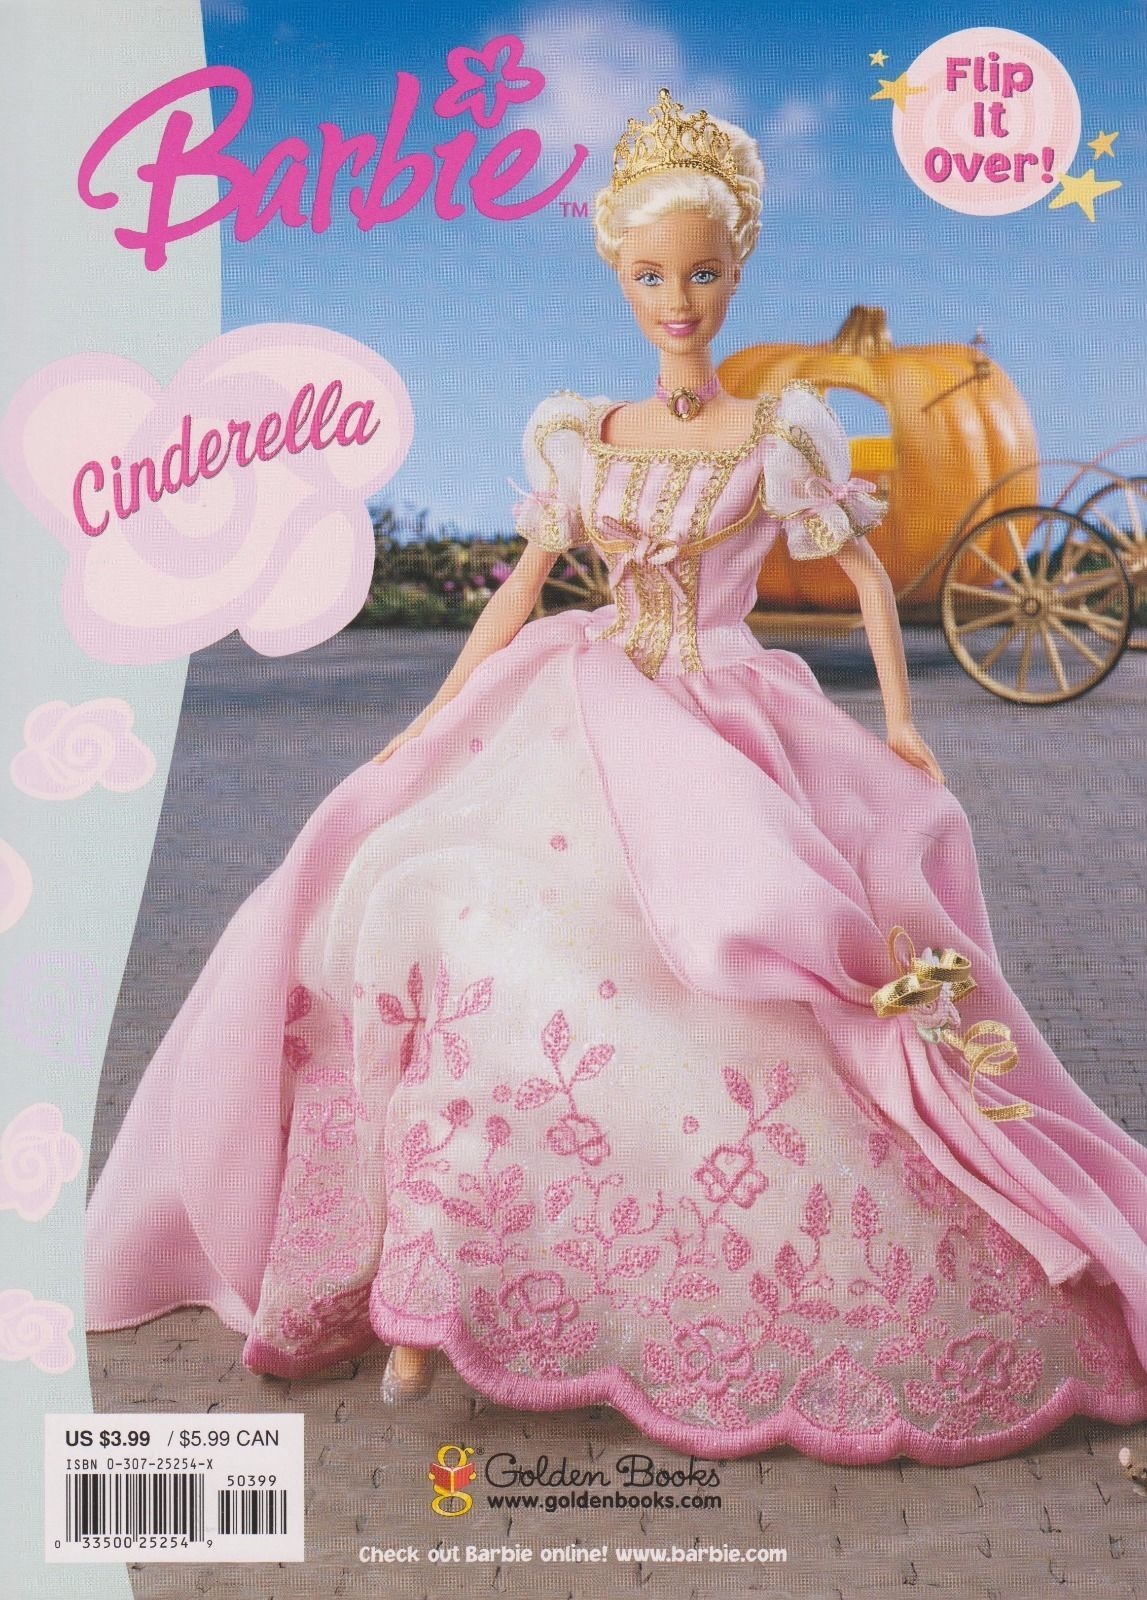 2000 Barbie FairyTale Princesses By Golden Books Flip It Over Coloring Book Cinderella